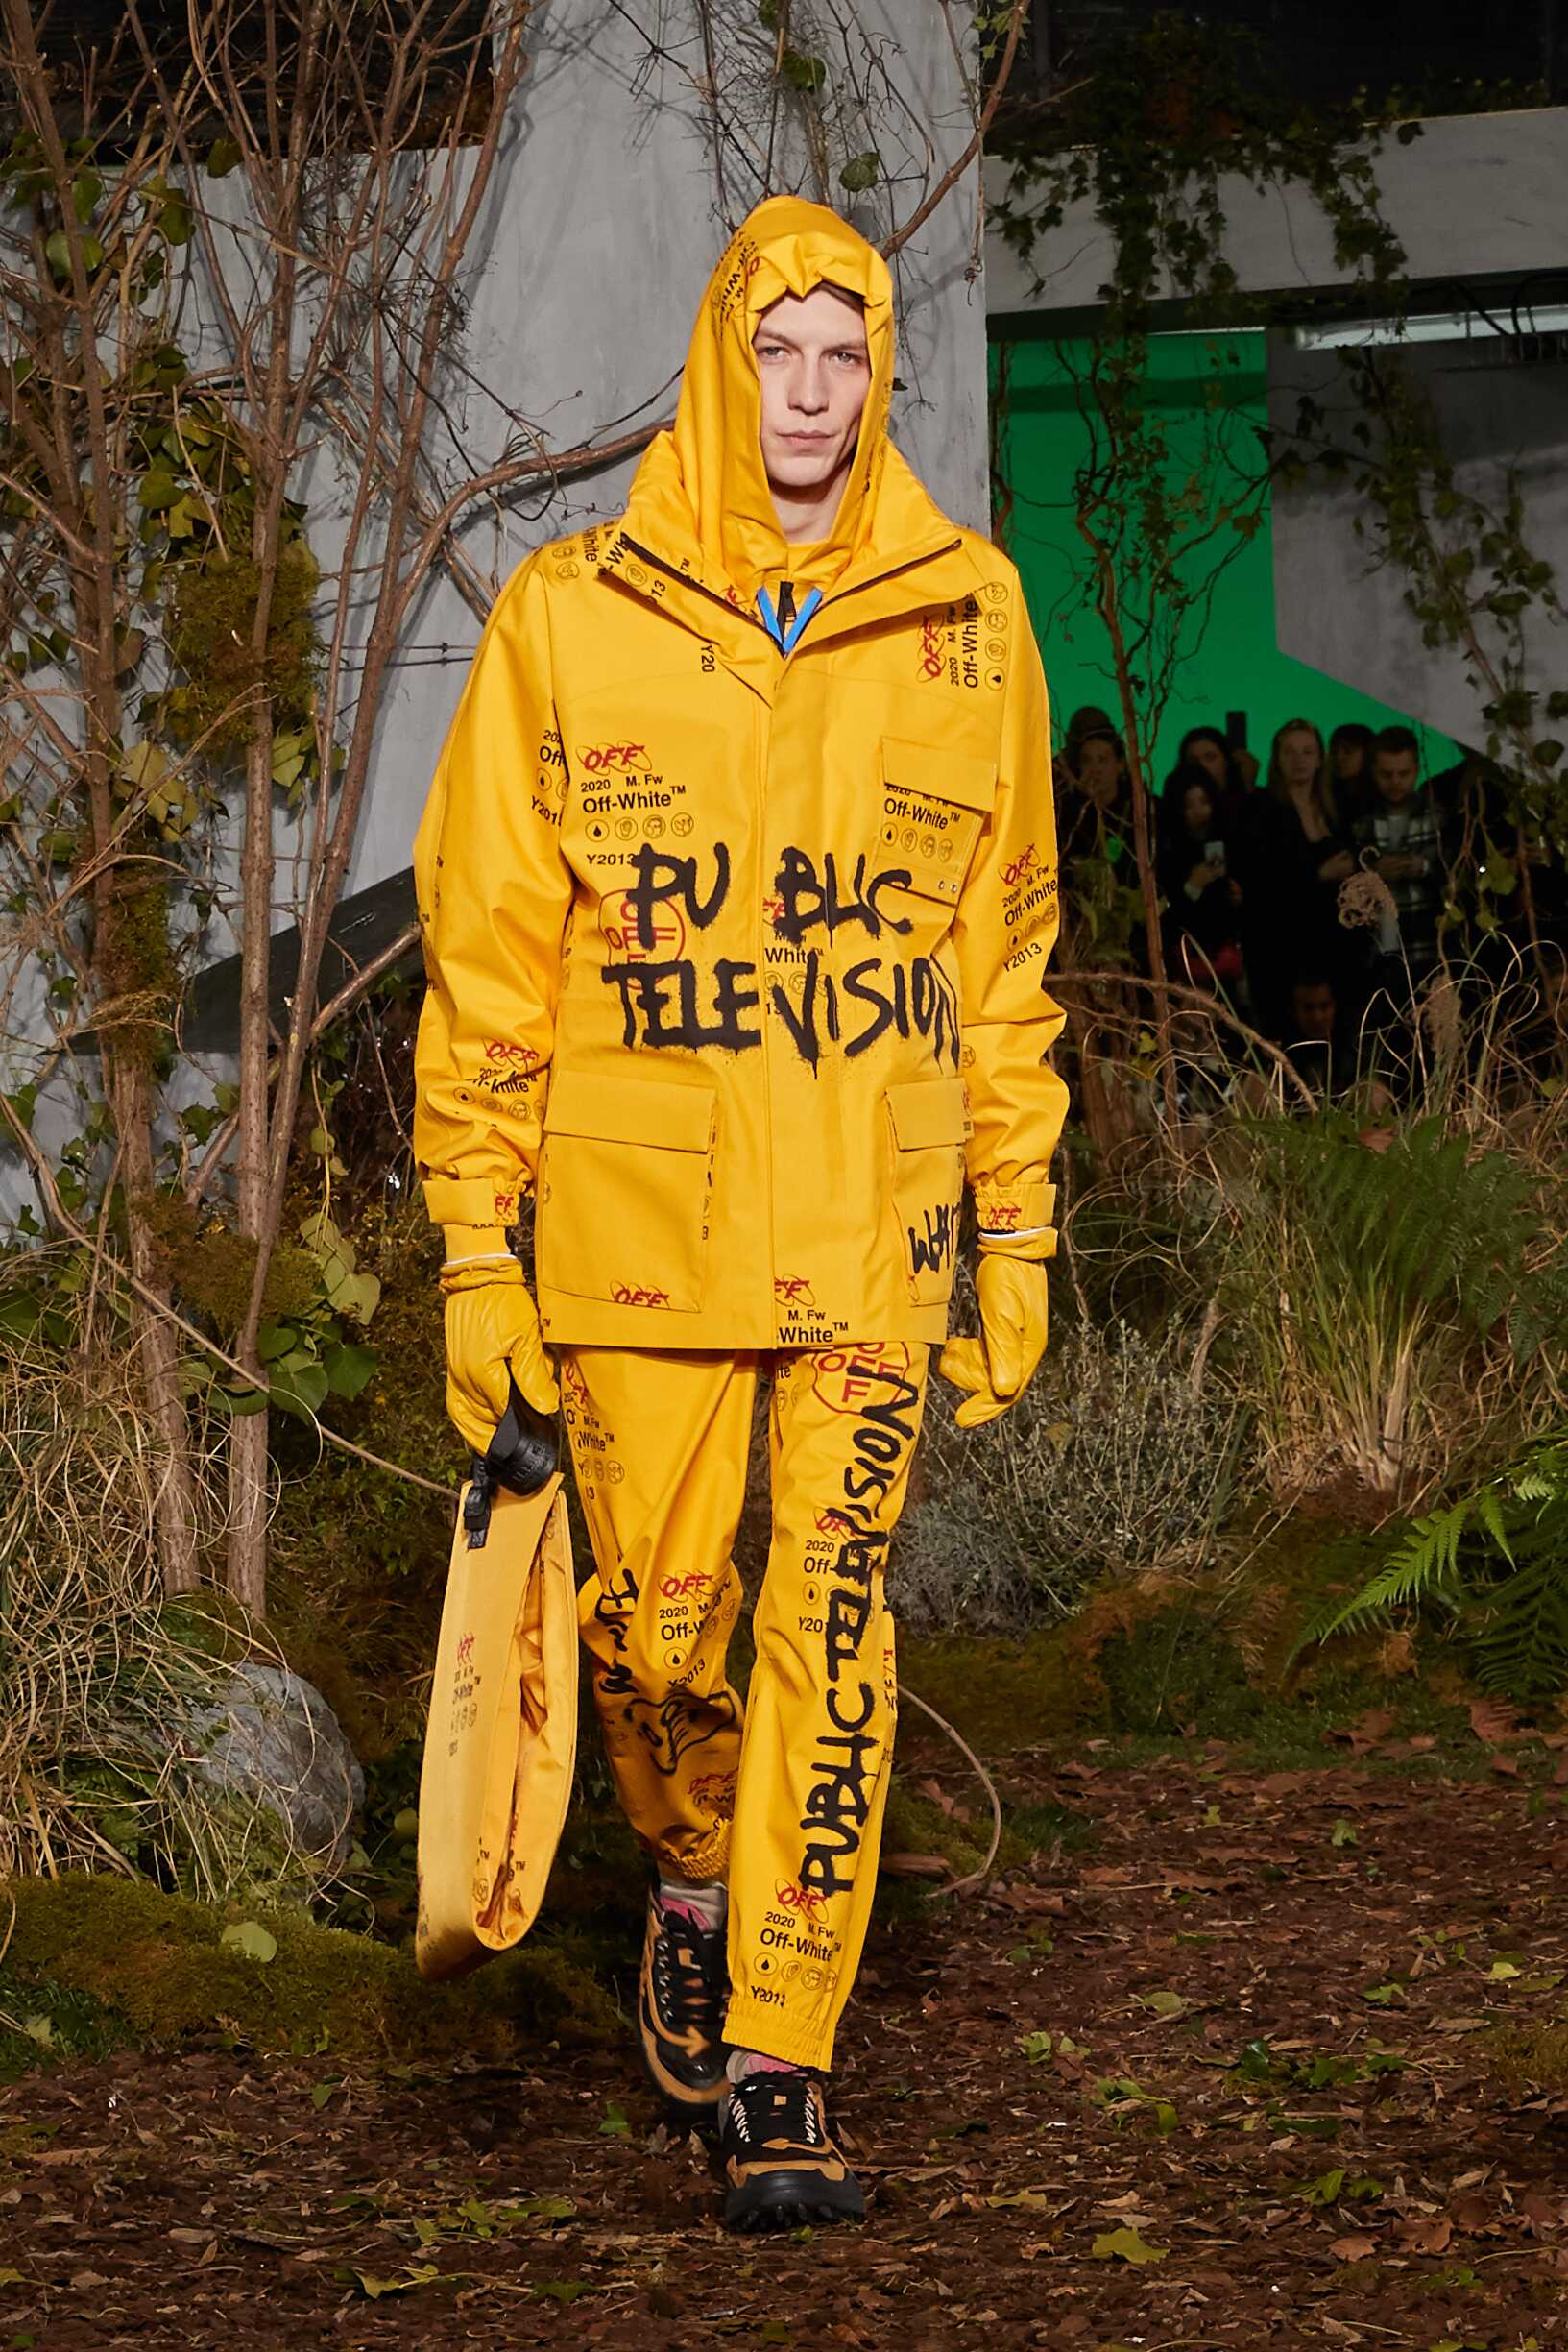 Menswear Winter Off White c/o Virgil Abloh 2019